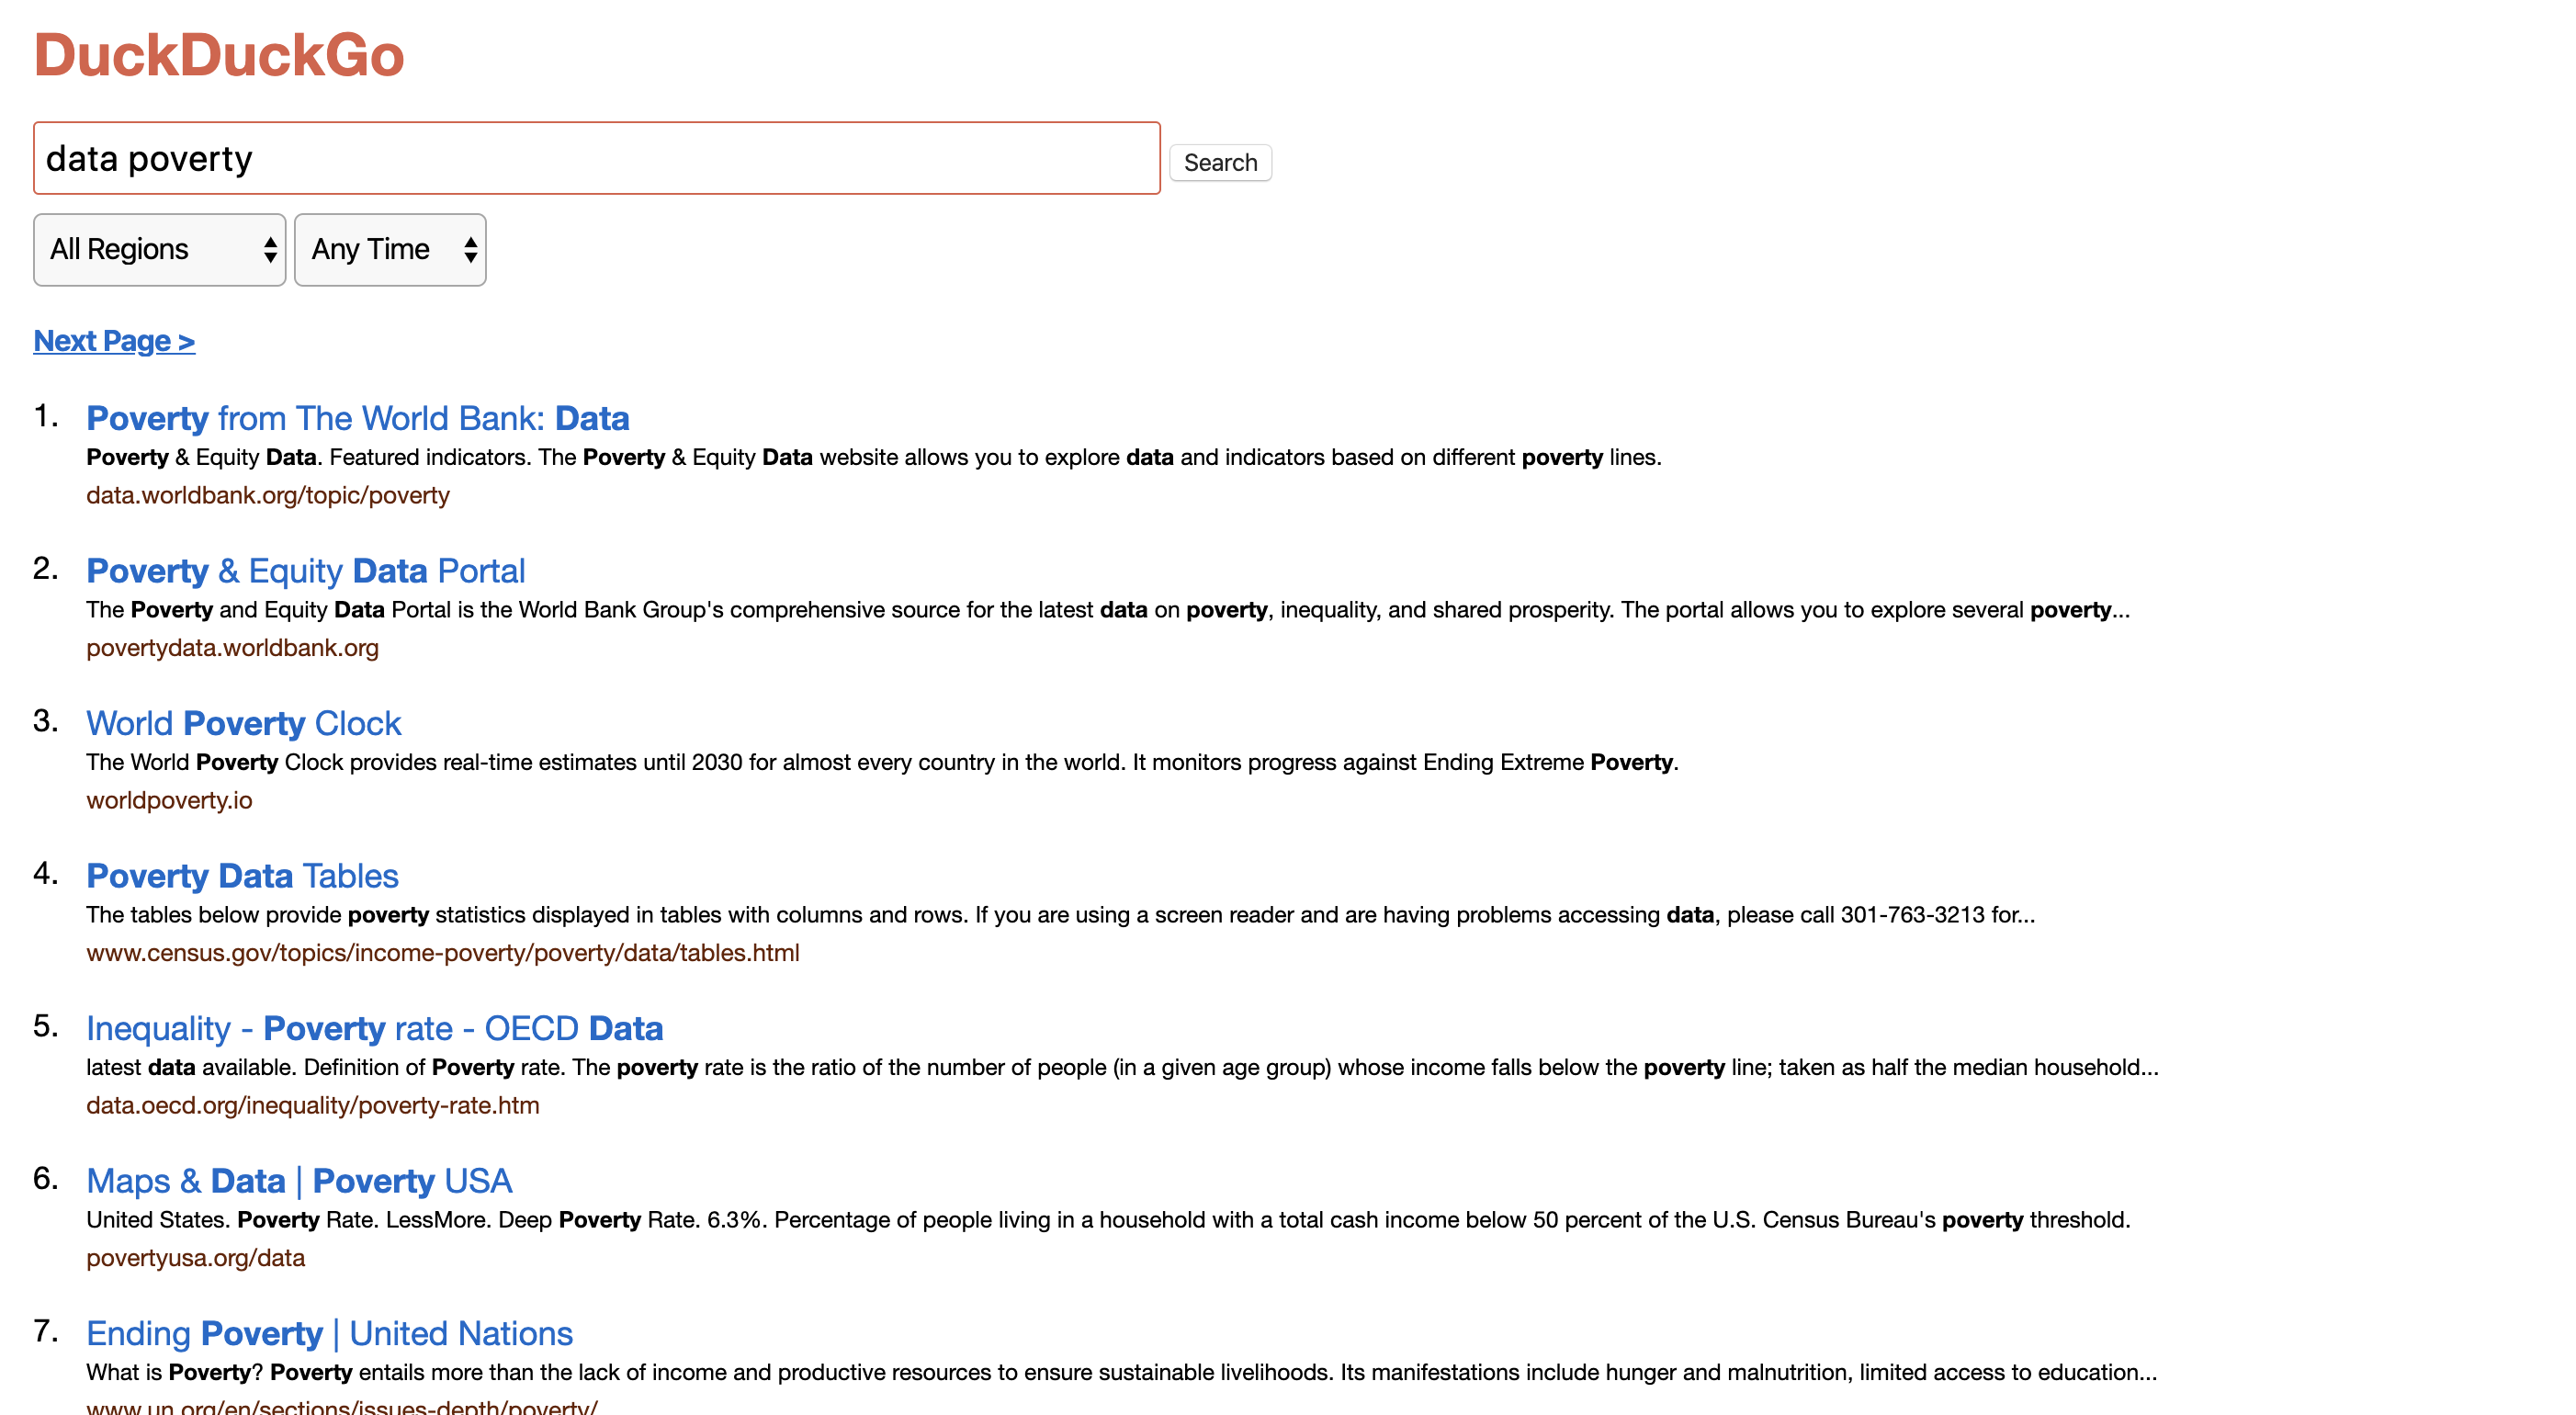 Screenshot of DuckDuckGo Lite showing search results for the term data poverty